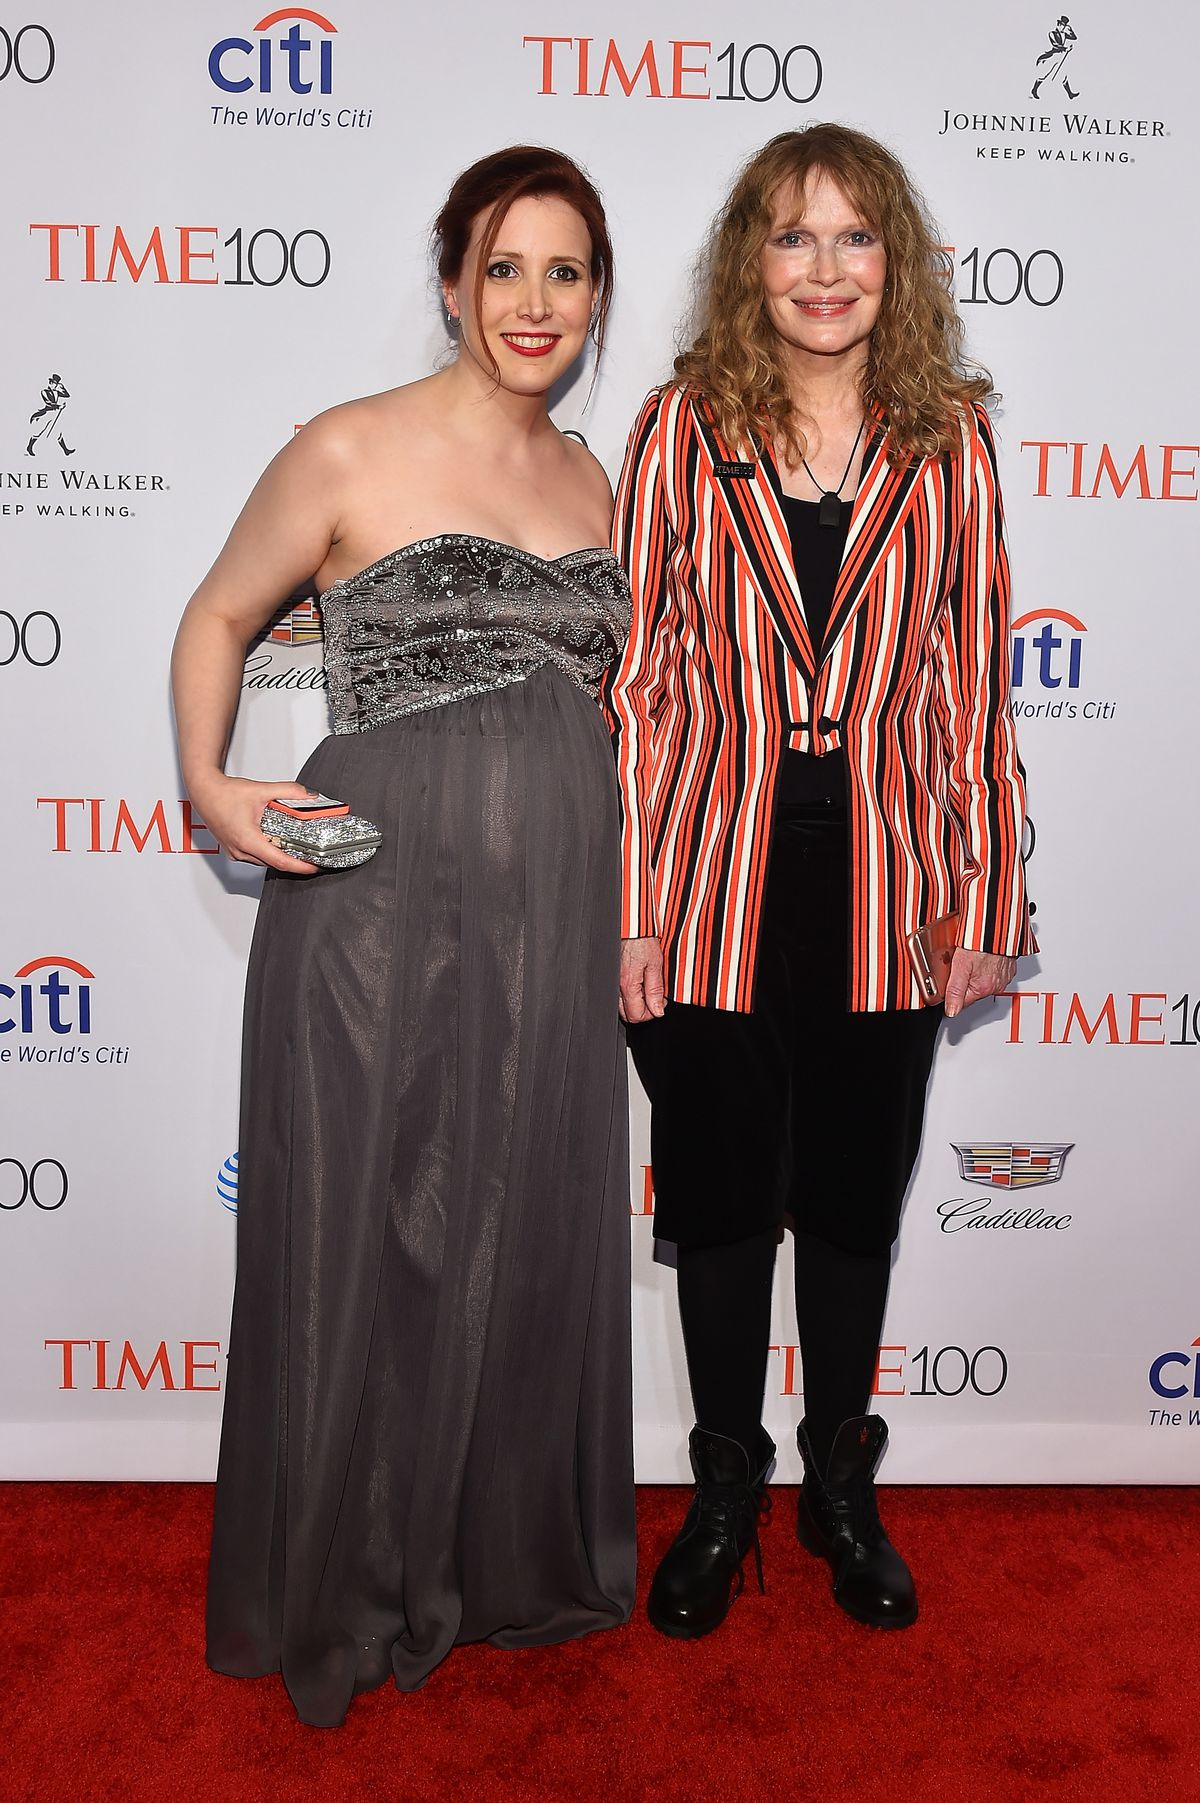 2016 Time 100 Gala, Time's Most Influential People In The World - Lobby Arrivals